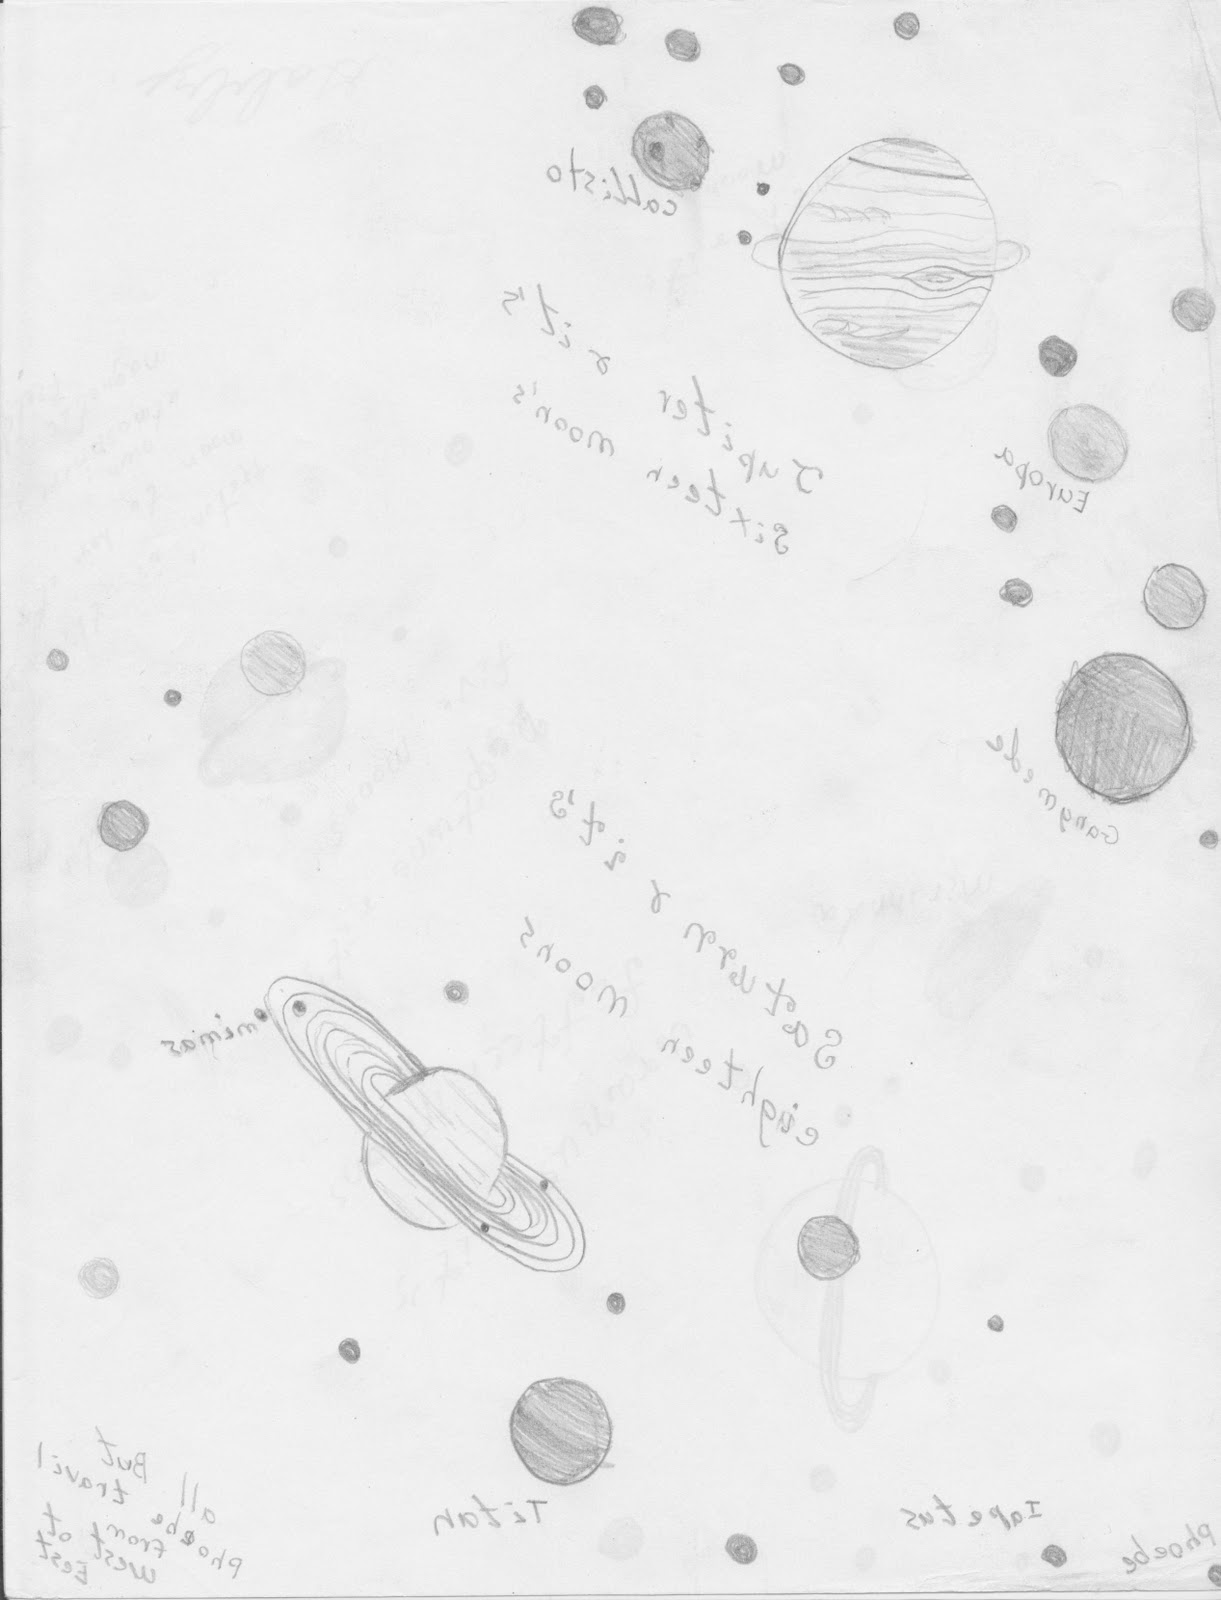 space planets pencil drawing - photo #10